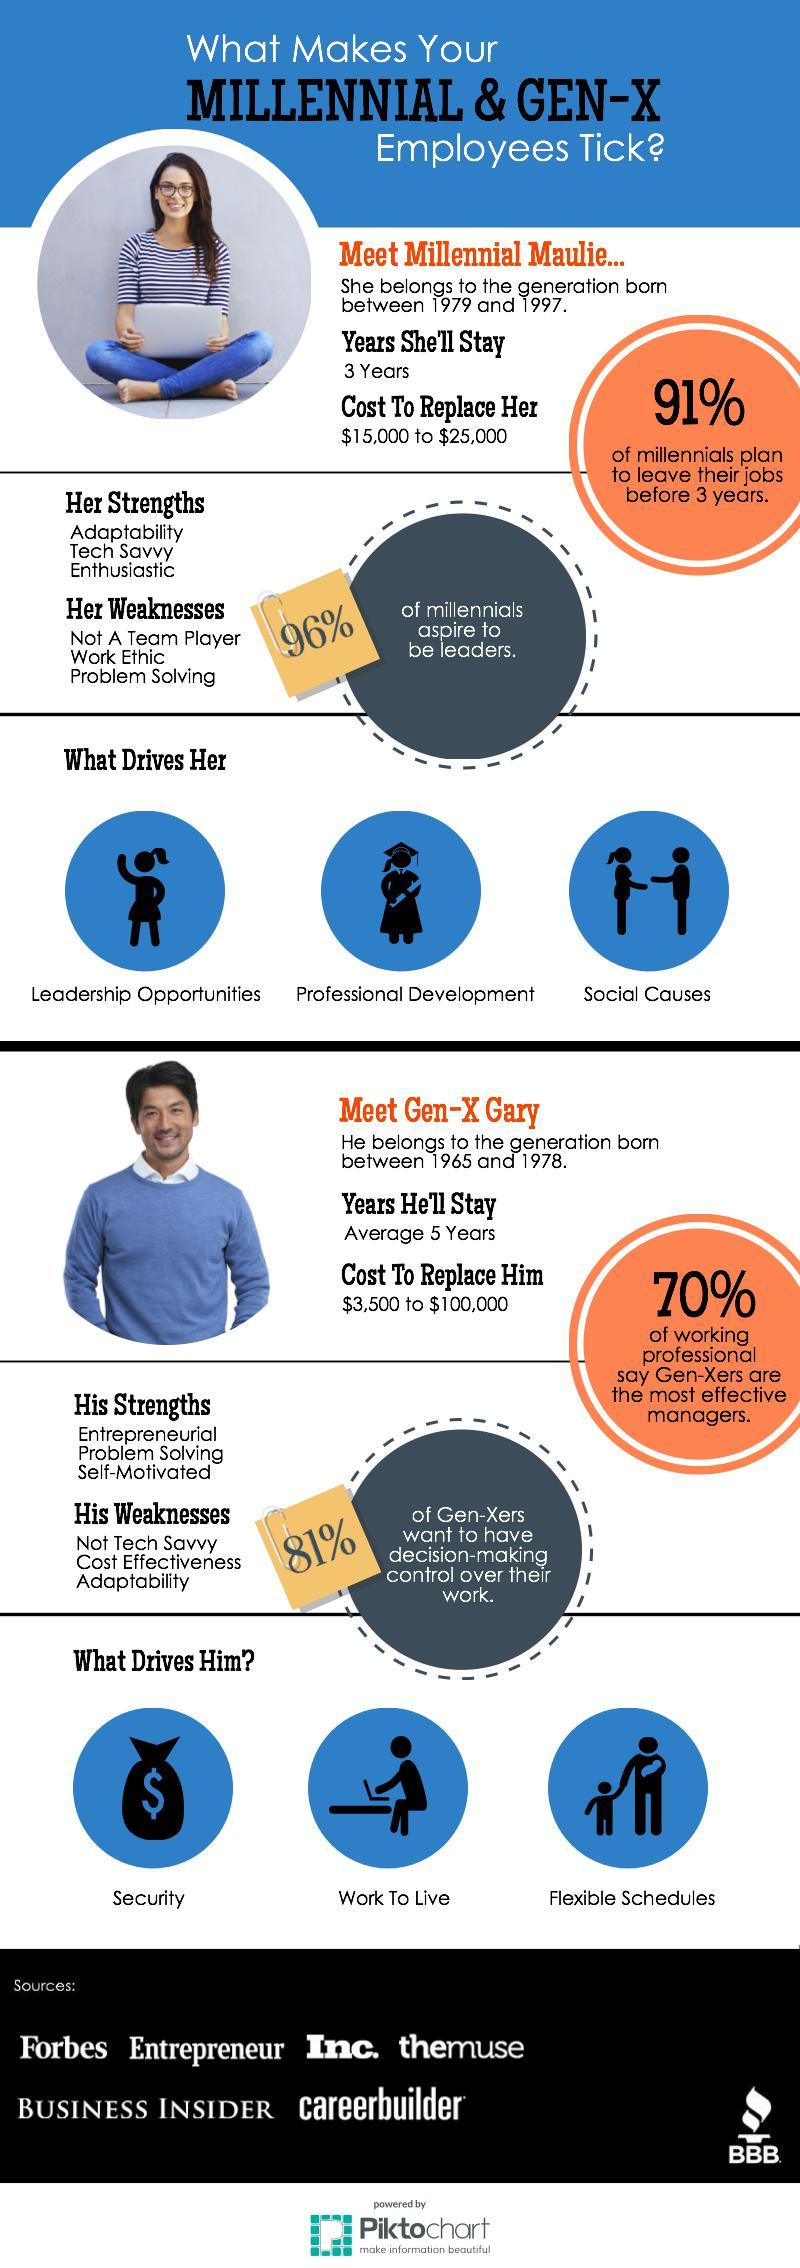 i quit reasons your best employees are leaving the infographic below reveals some common strengths and weaknesses of your millennial and generation x employees or potential employees